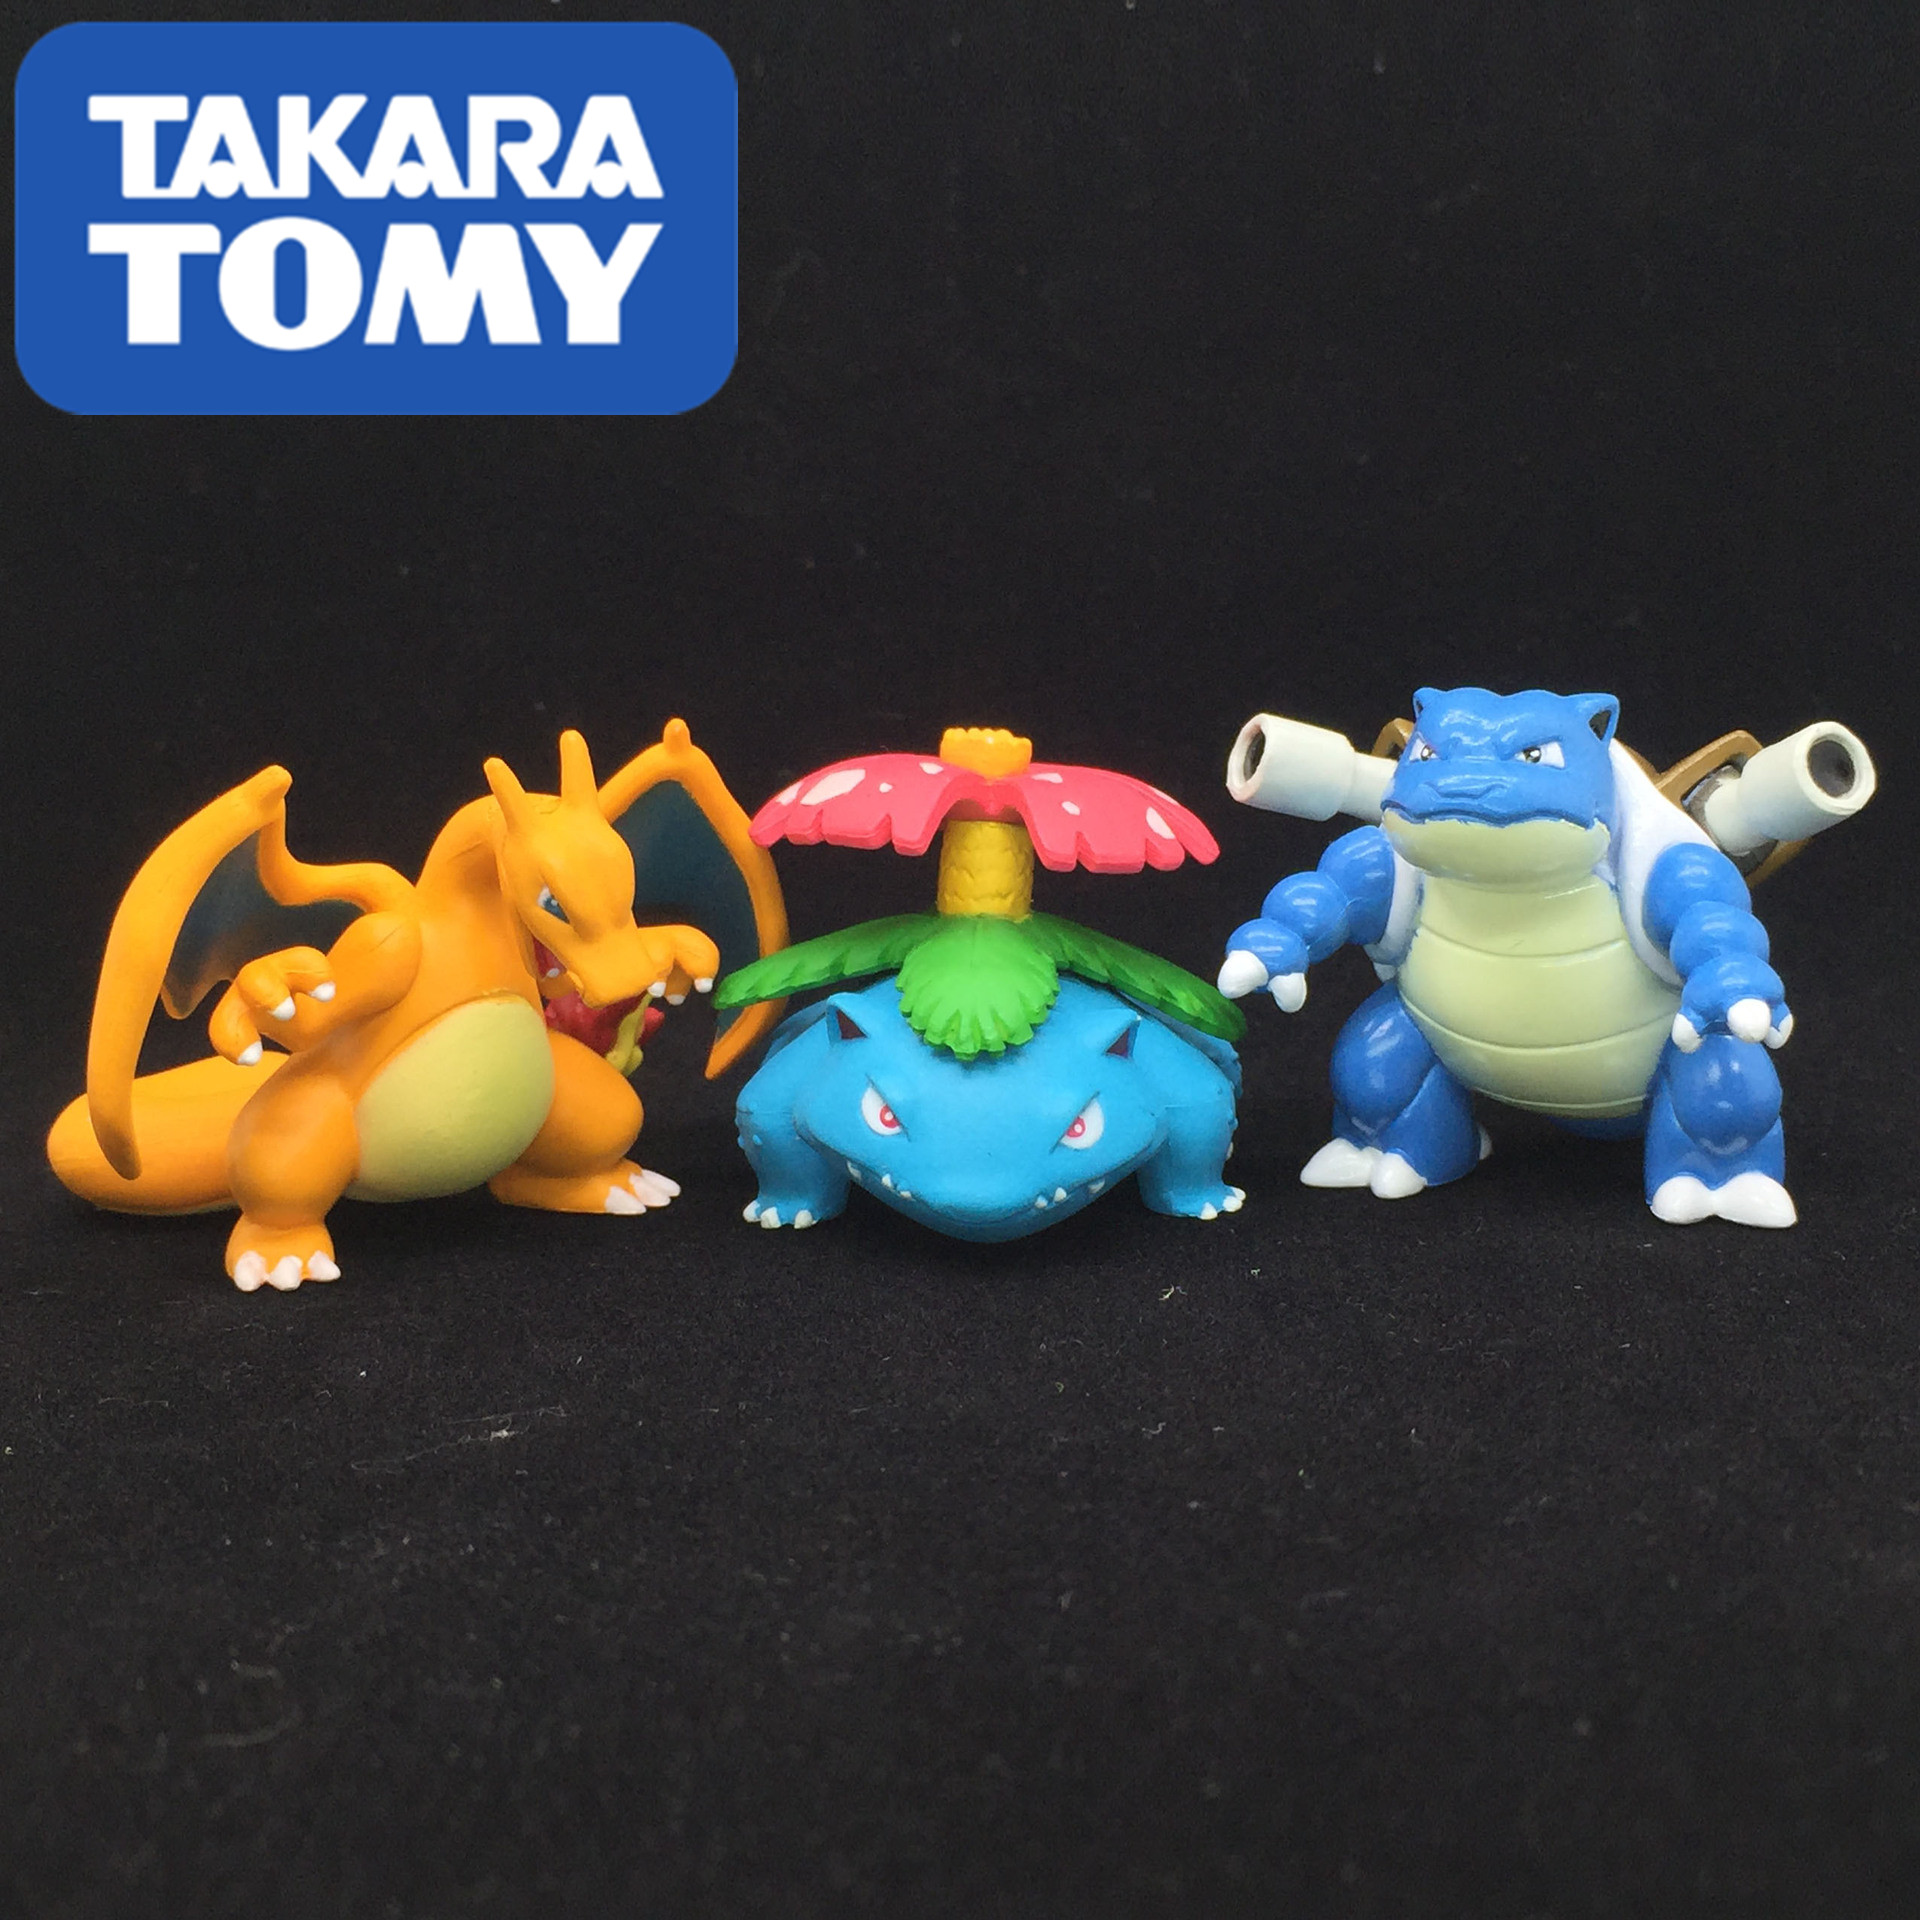 Takara Tomy Pokemon 4cm Charizard Blastoise Venusaur Mewtwo  Medium MC Ornaments Anime Action Figure Dolls Toy